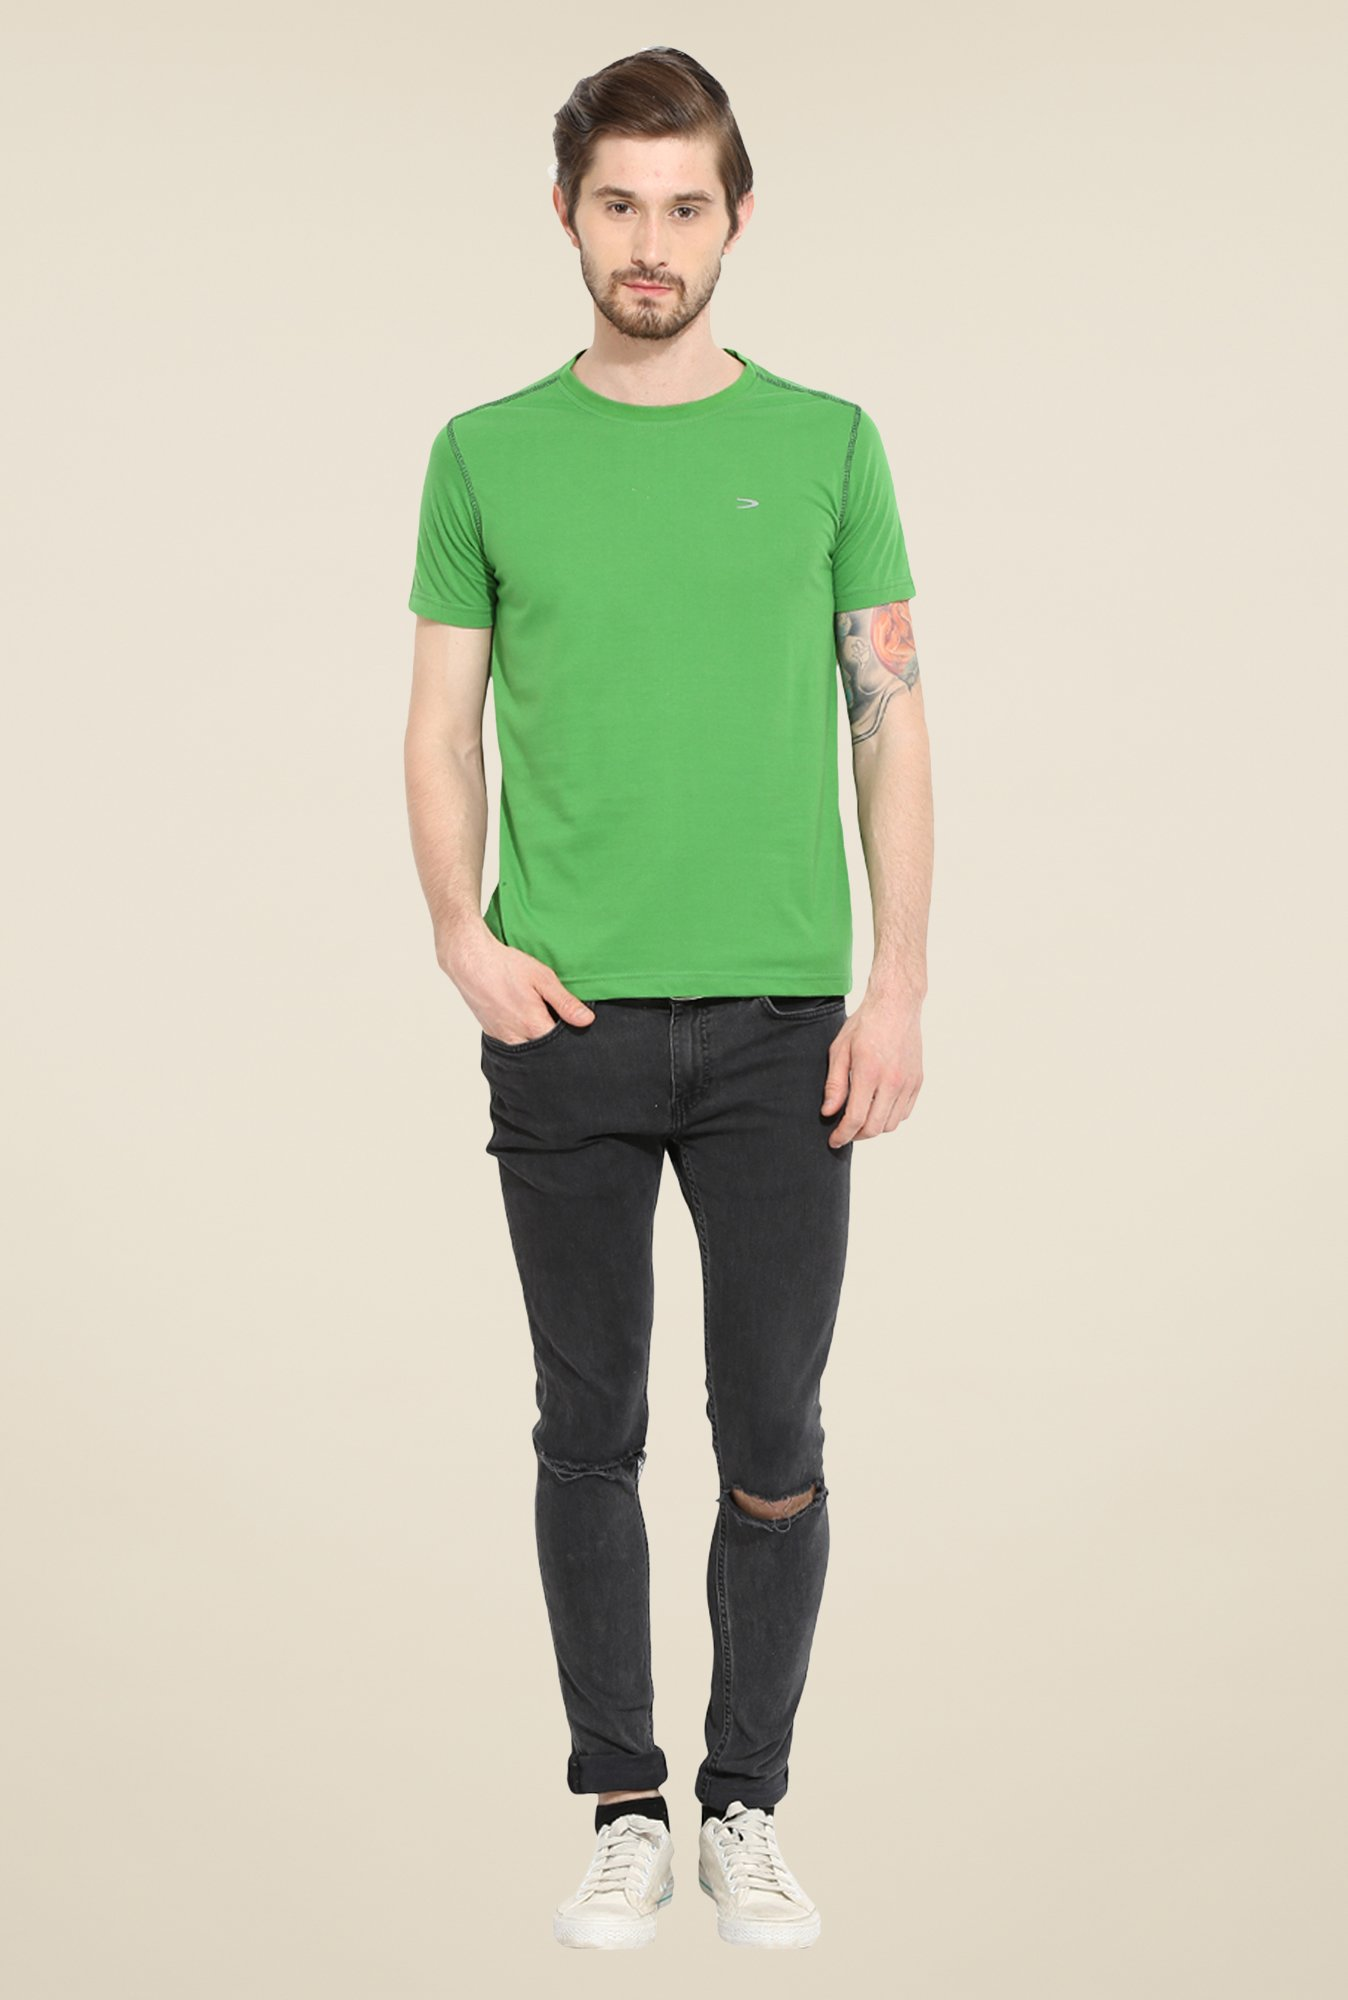 Duke Stardust Green Solid T-shirt